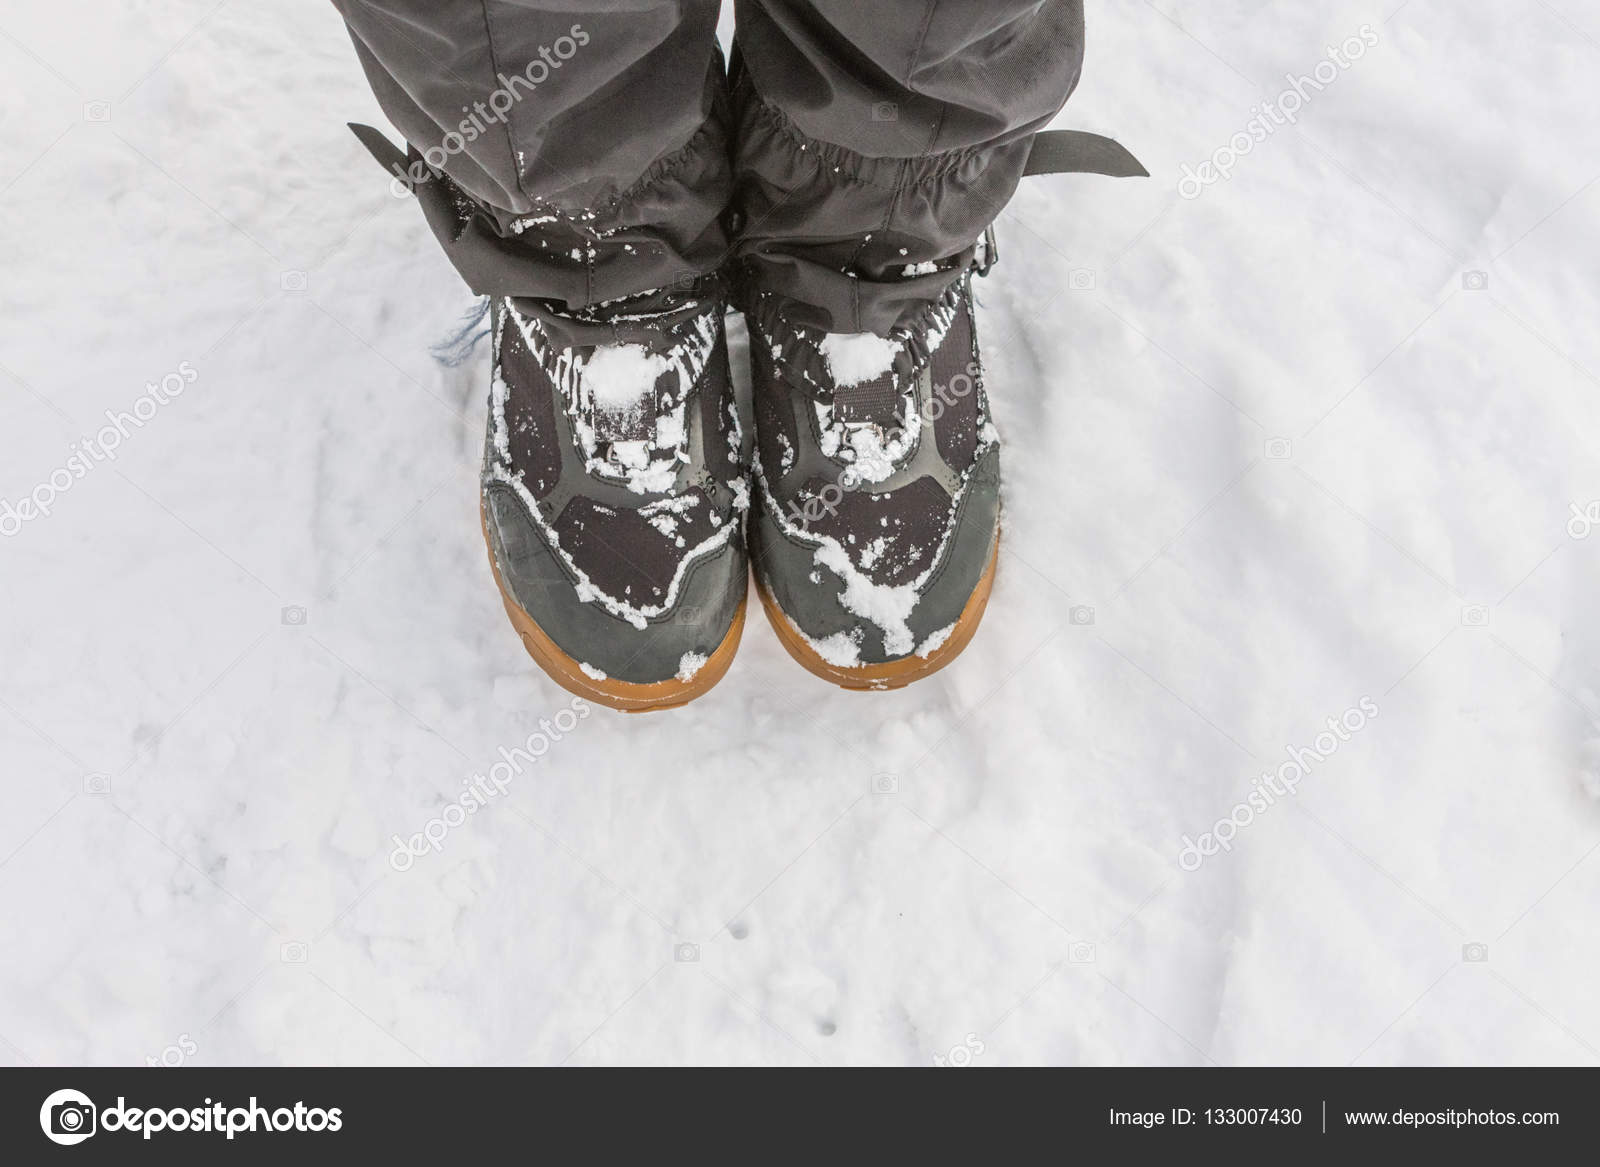 a9fc39984f06 depositphotos 133007430-stock-photo-top-view-of-feet-in.jpg